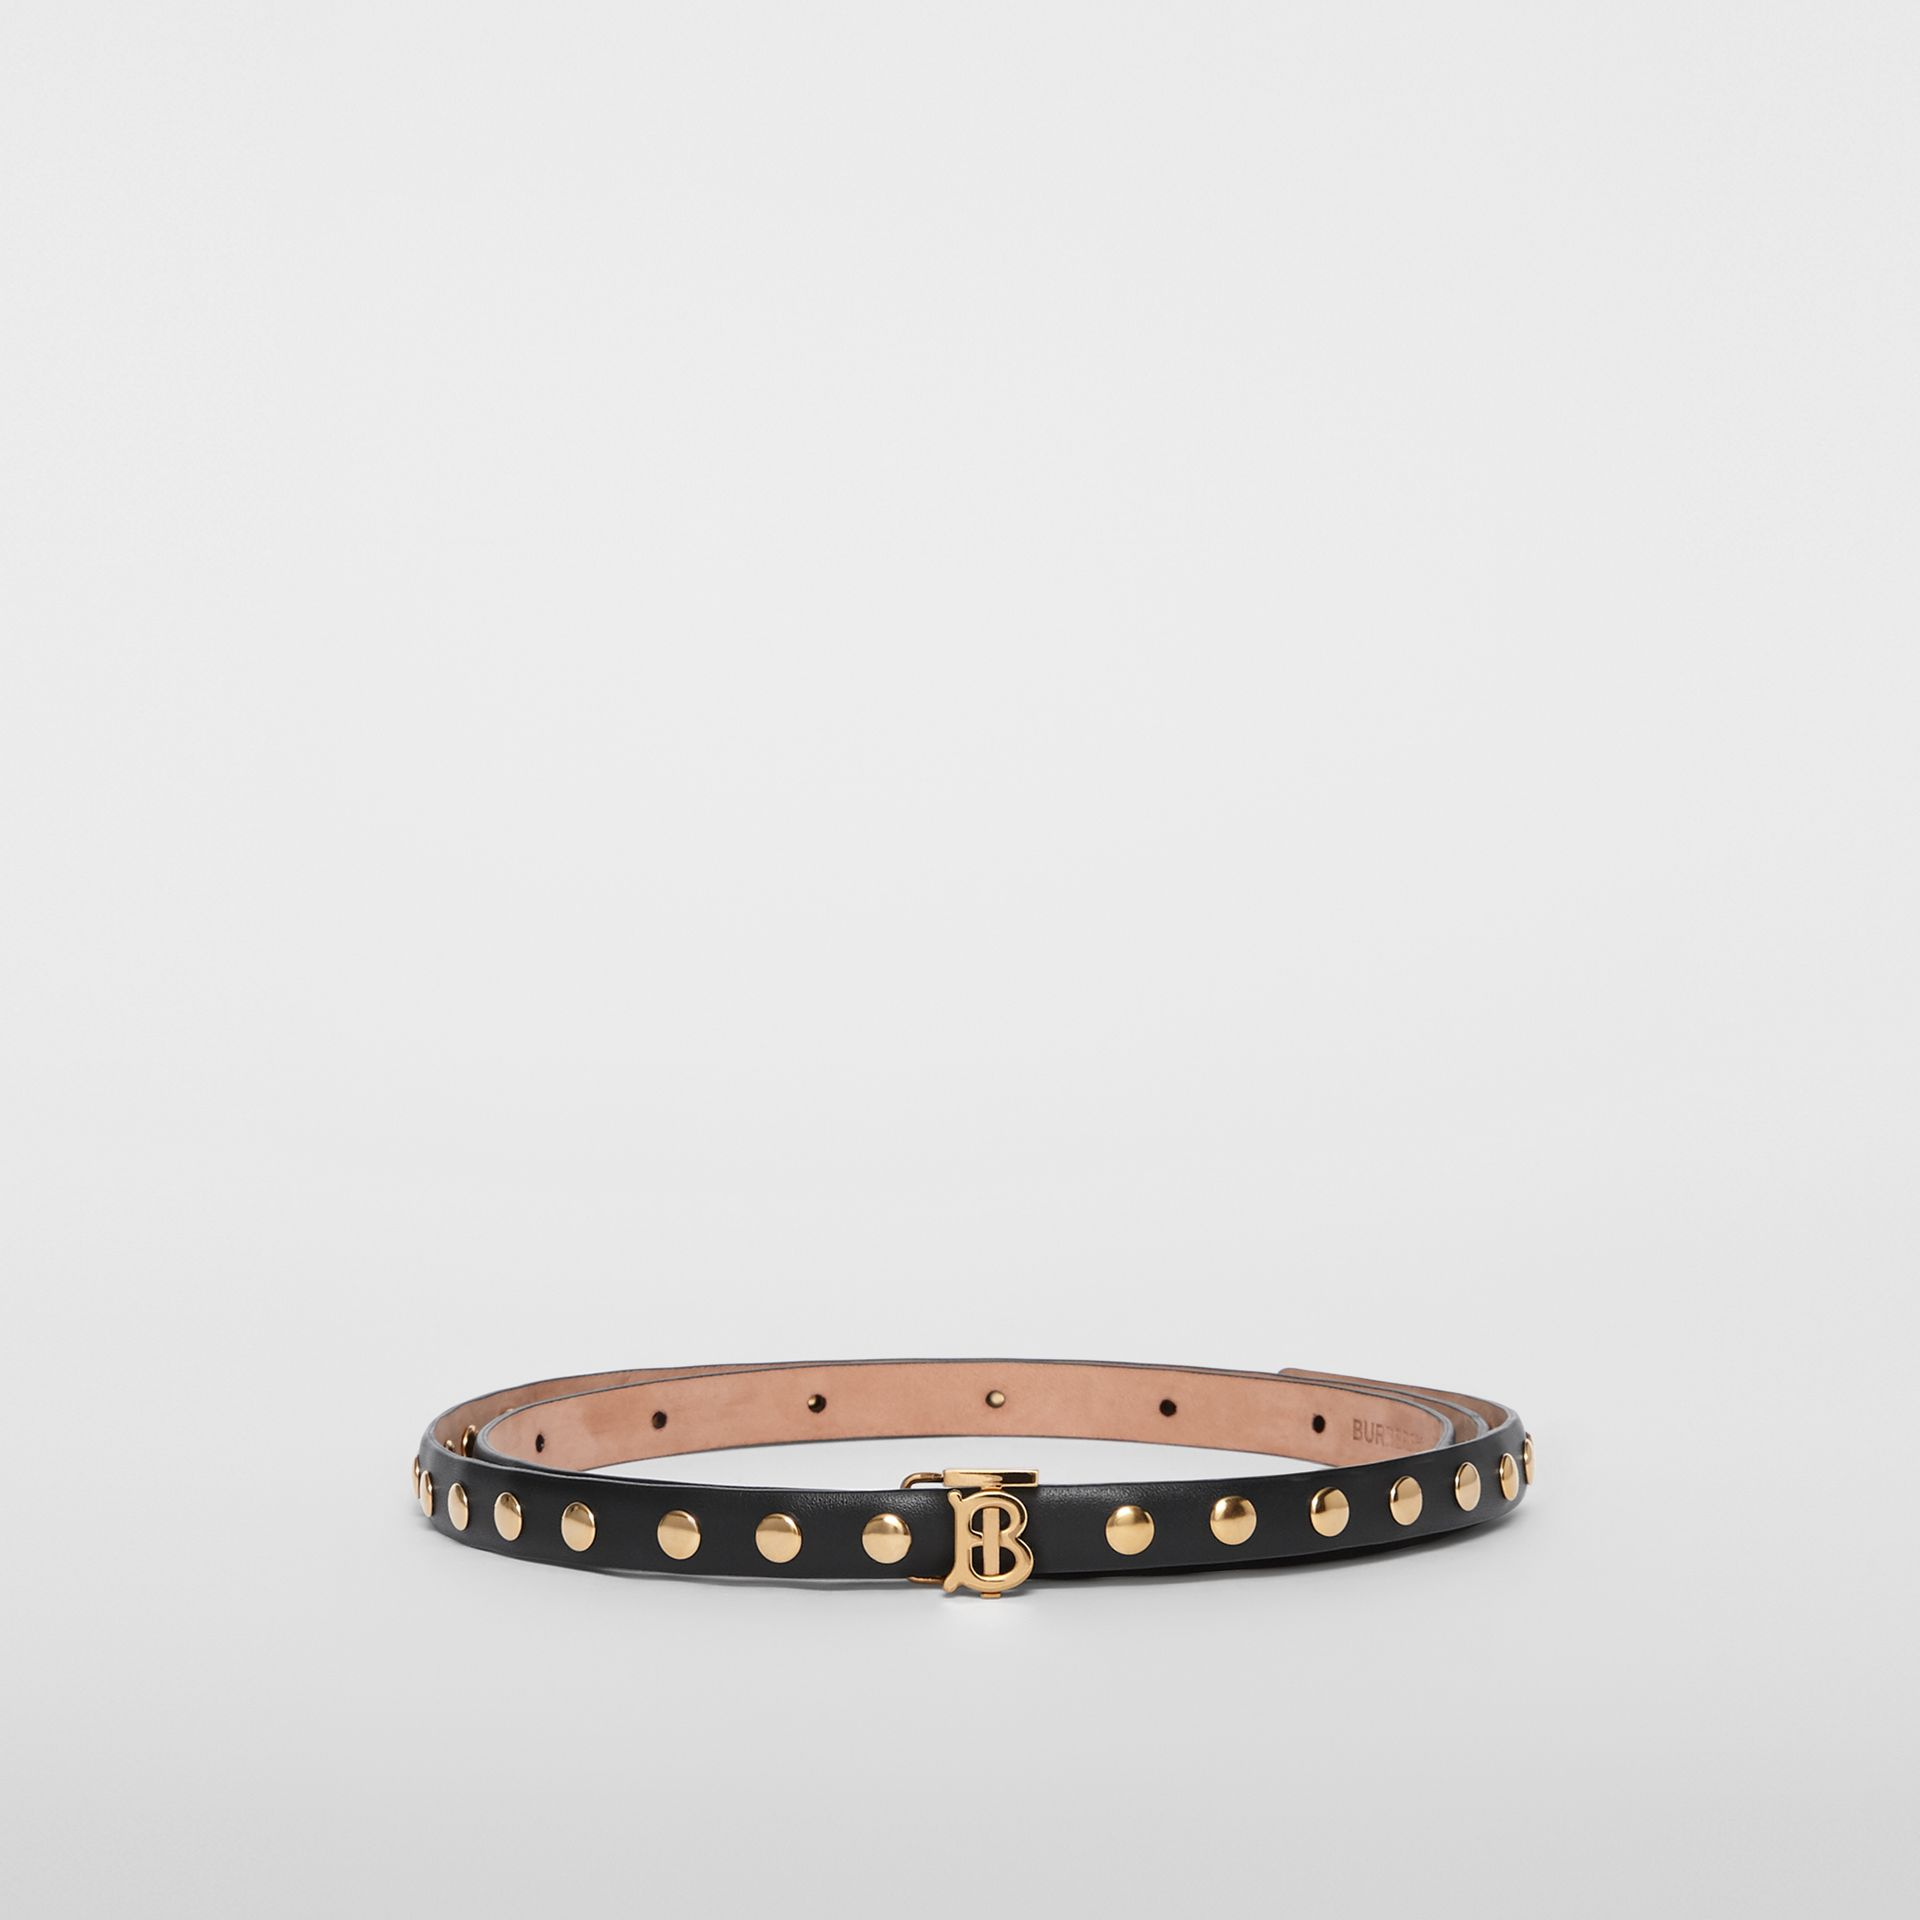 Monogram Motif Studded Leather Belt in Black/light Gold - Women | Burberry - gallery image 3